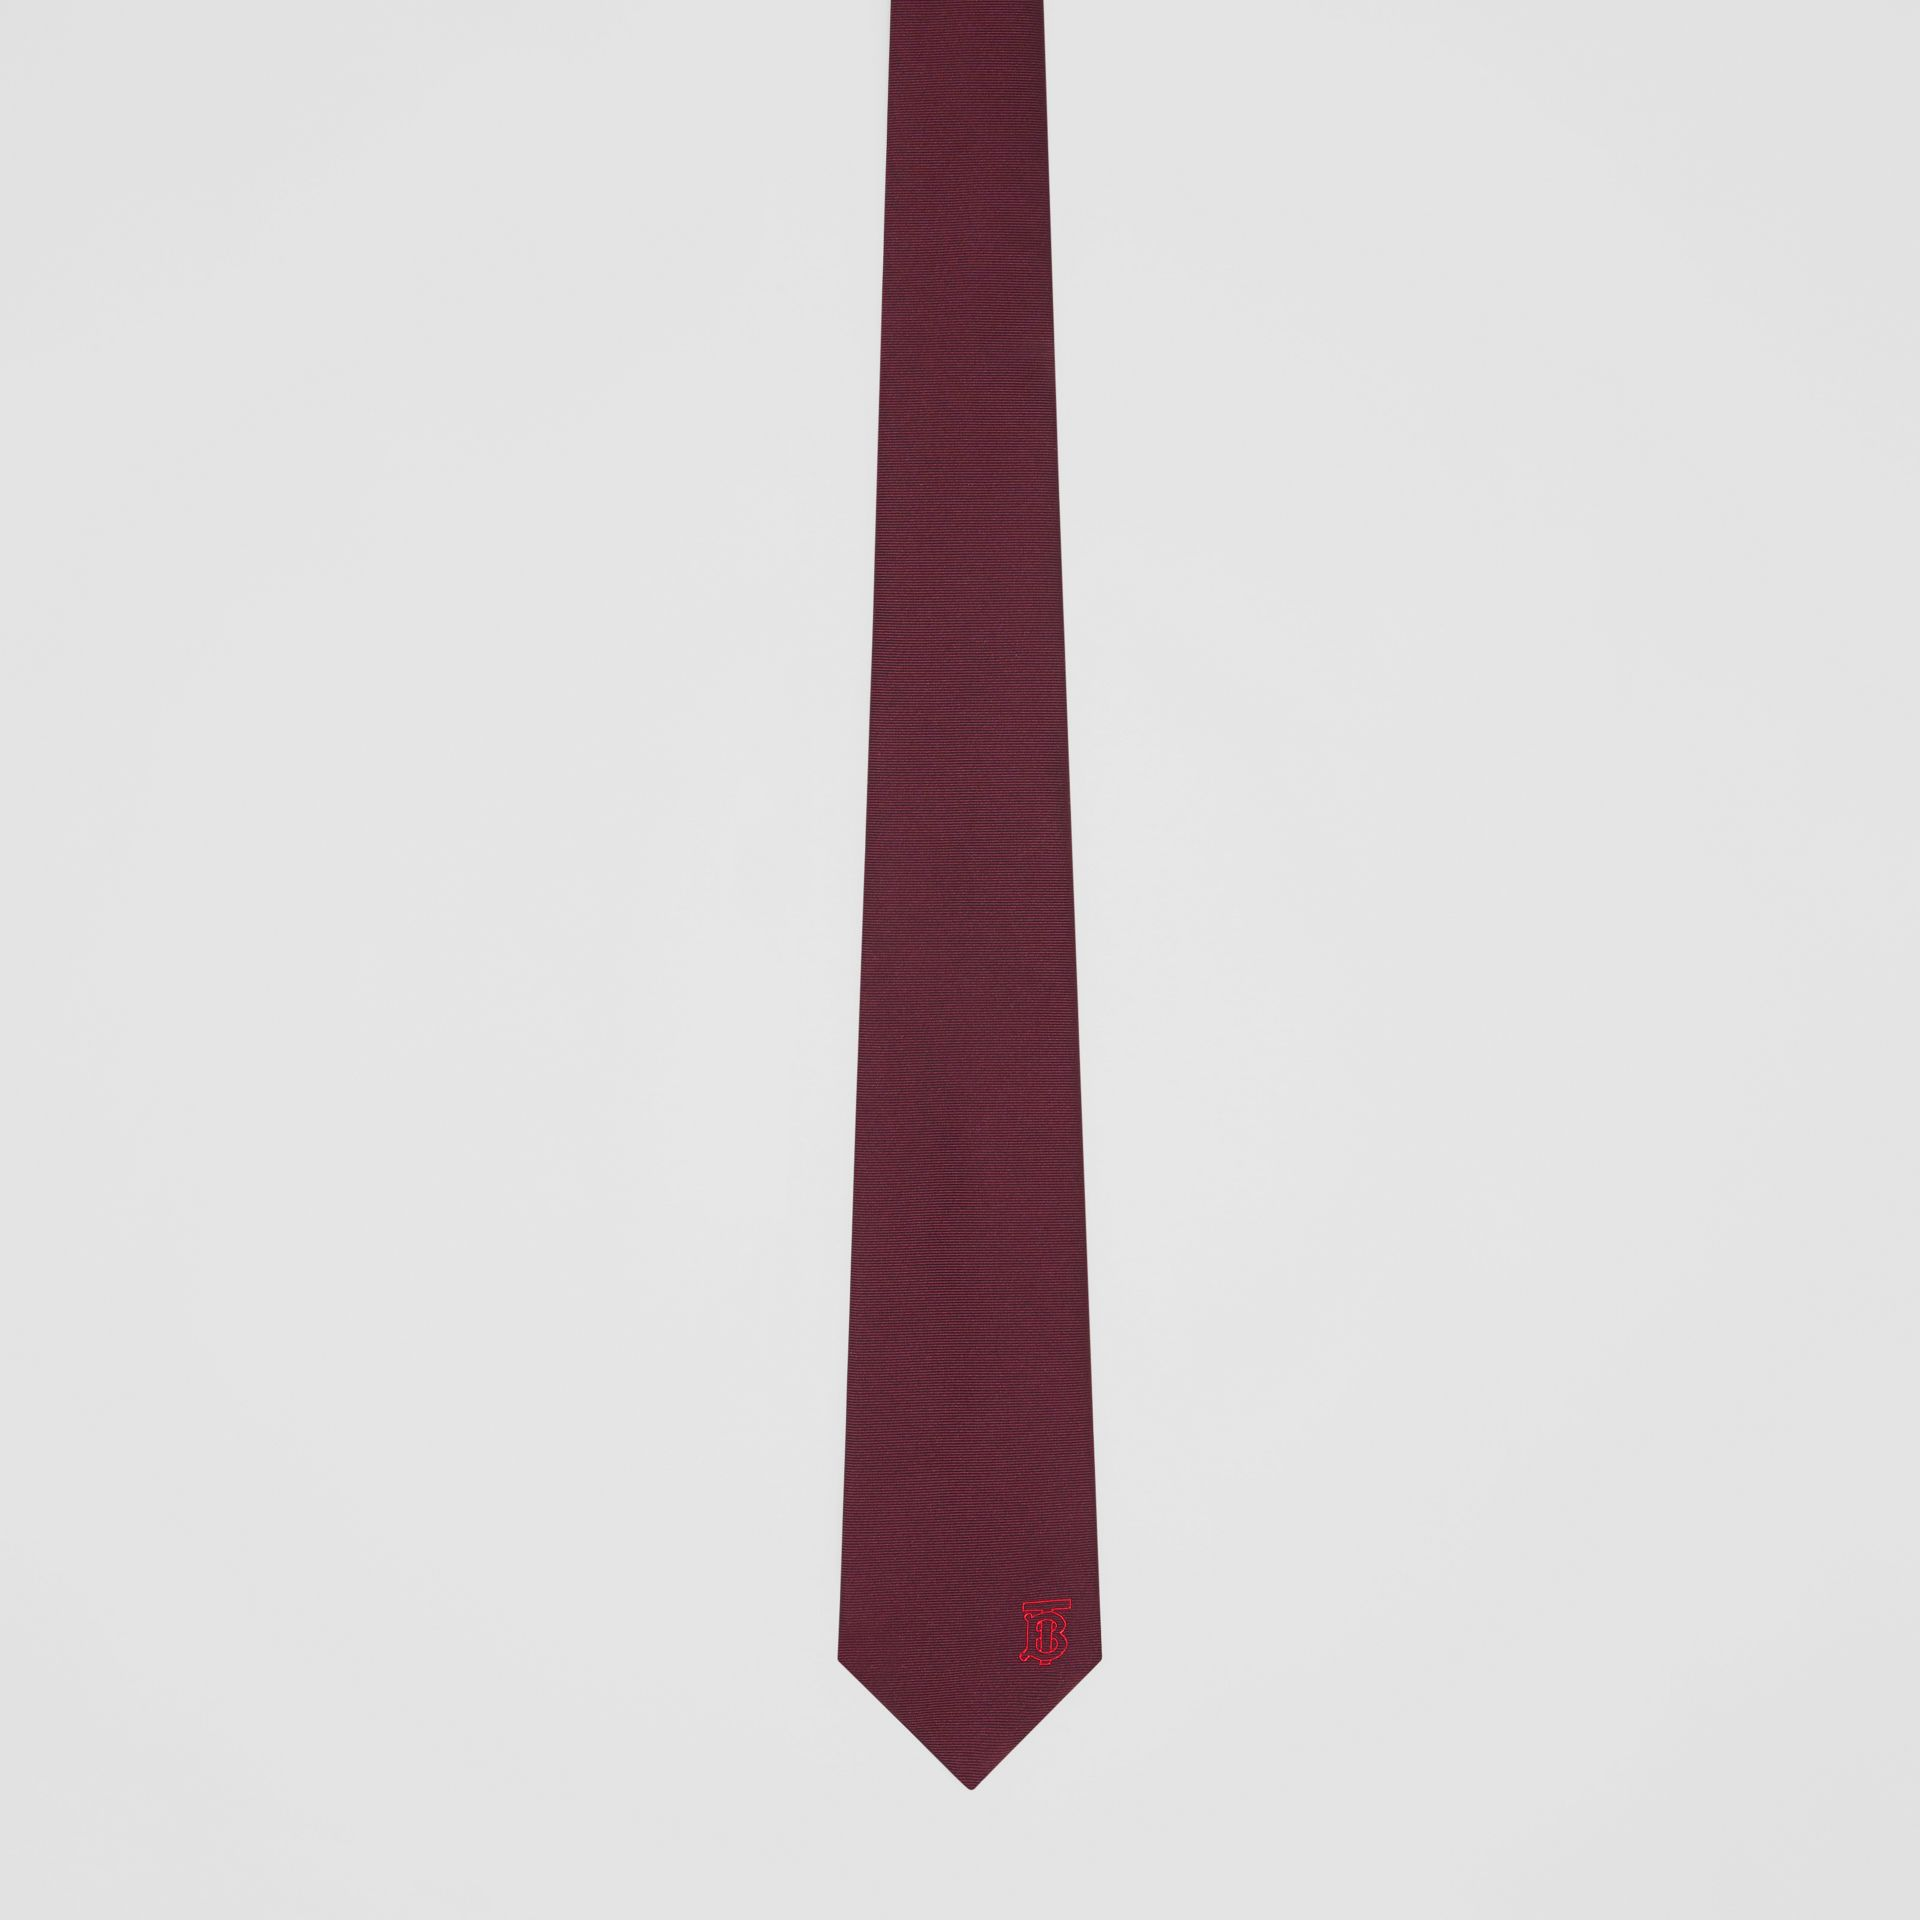 Classic Cut Monogram Motif Silk Tie in Deep Claret - Men | Burberry - gallery image 3